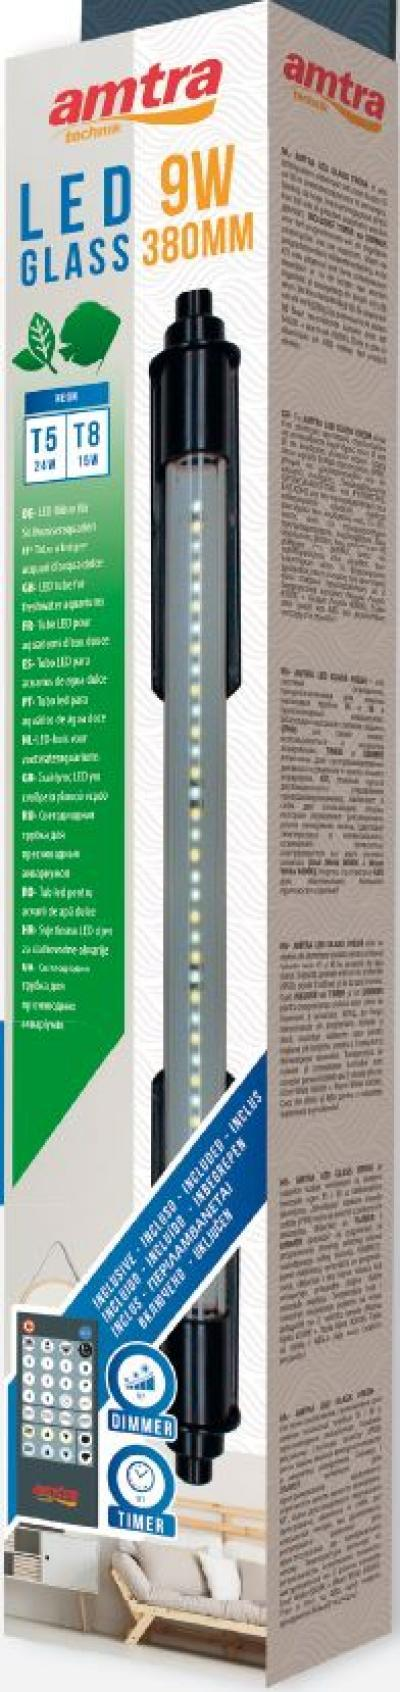 AMTRA lempa LED GLASS FRESH 480mm 12W